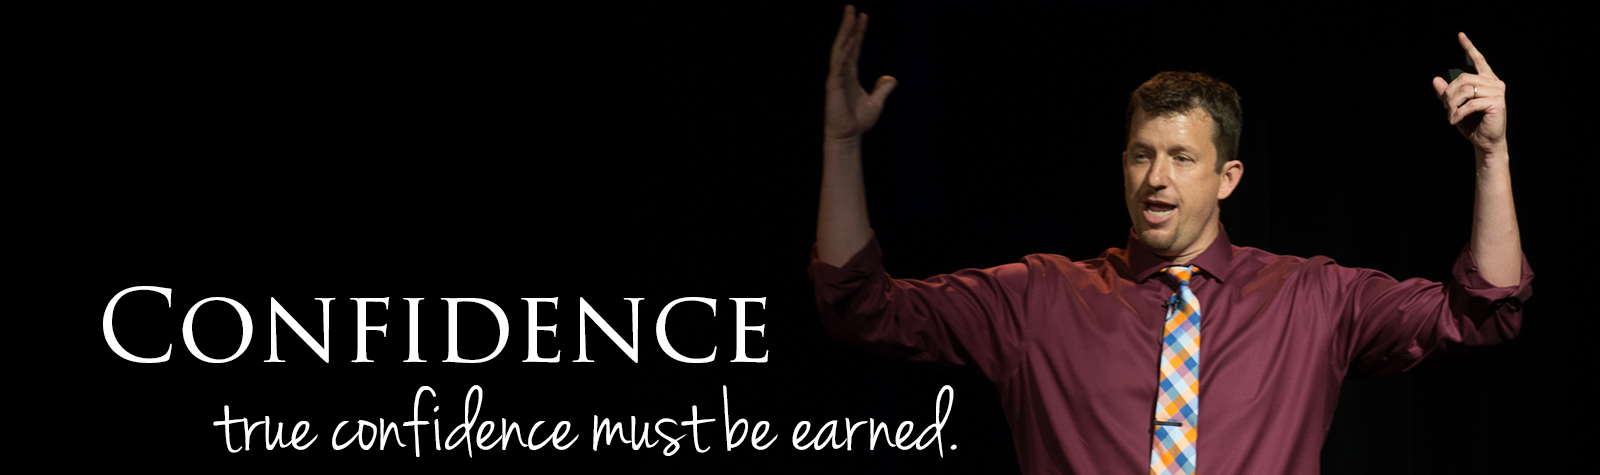 Website Banner - hands up pick with confidence statement